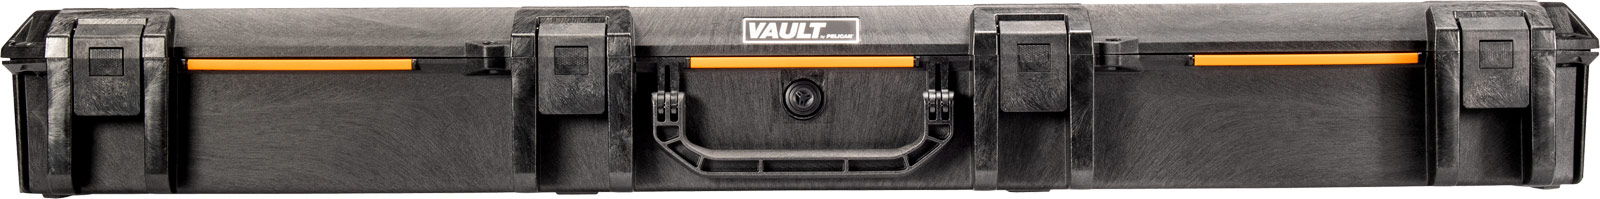 buy pelican vault v770 shop long weapon case